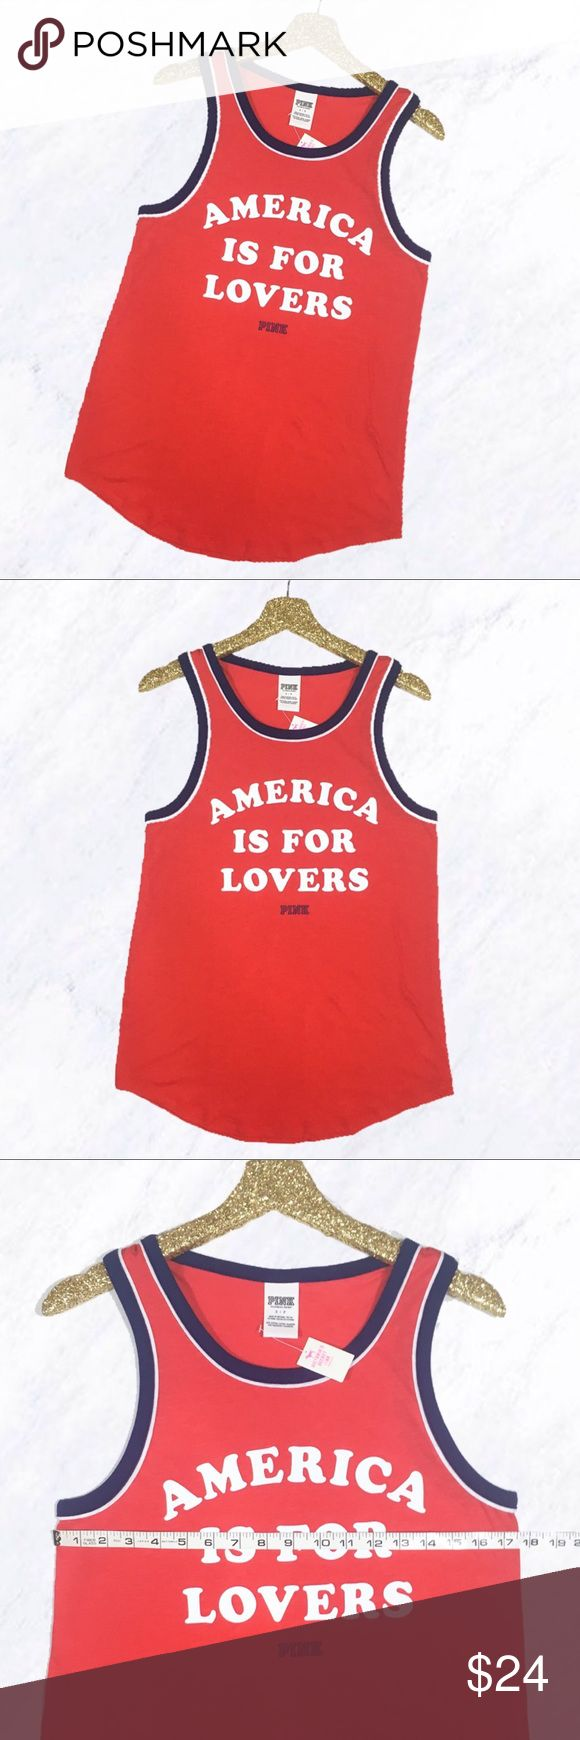 """VS PINK America is for Lovers Tank Top Super cute patriotic tank from Victoria's Secret PINK! Red with """"America is for Lovers"""" graphic text in white and blue trim around neck and arm holes. Perfect for 4th of July or any day because this statement is always true! This adorable sleeveless shirt is brand new with tags and never worn. PINK Victoria's Secret Tops Tank Tops"""